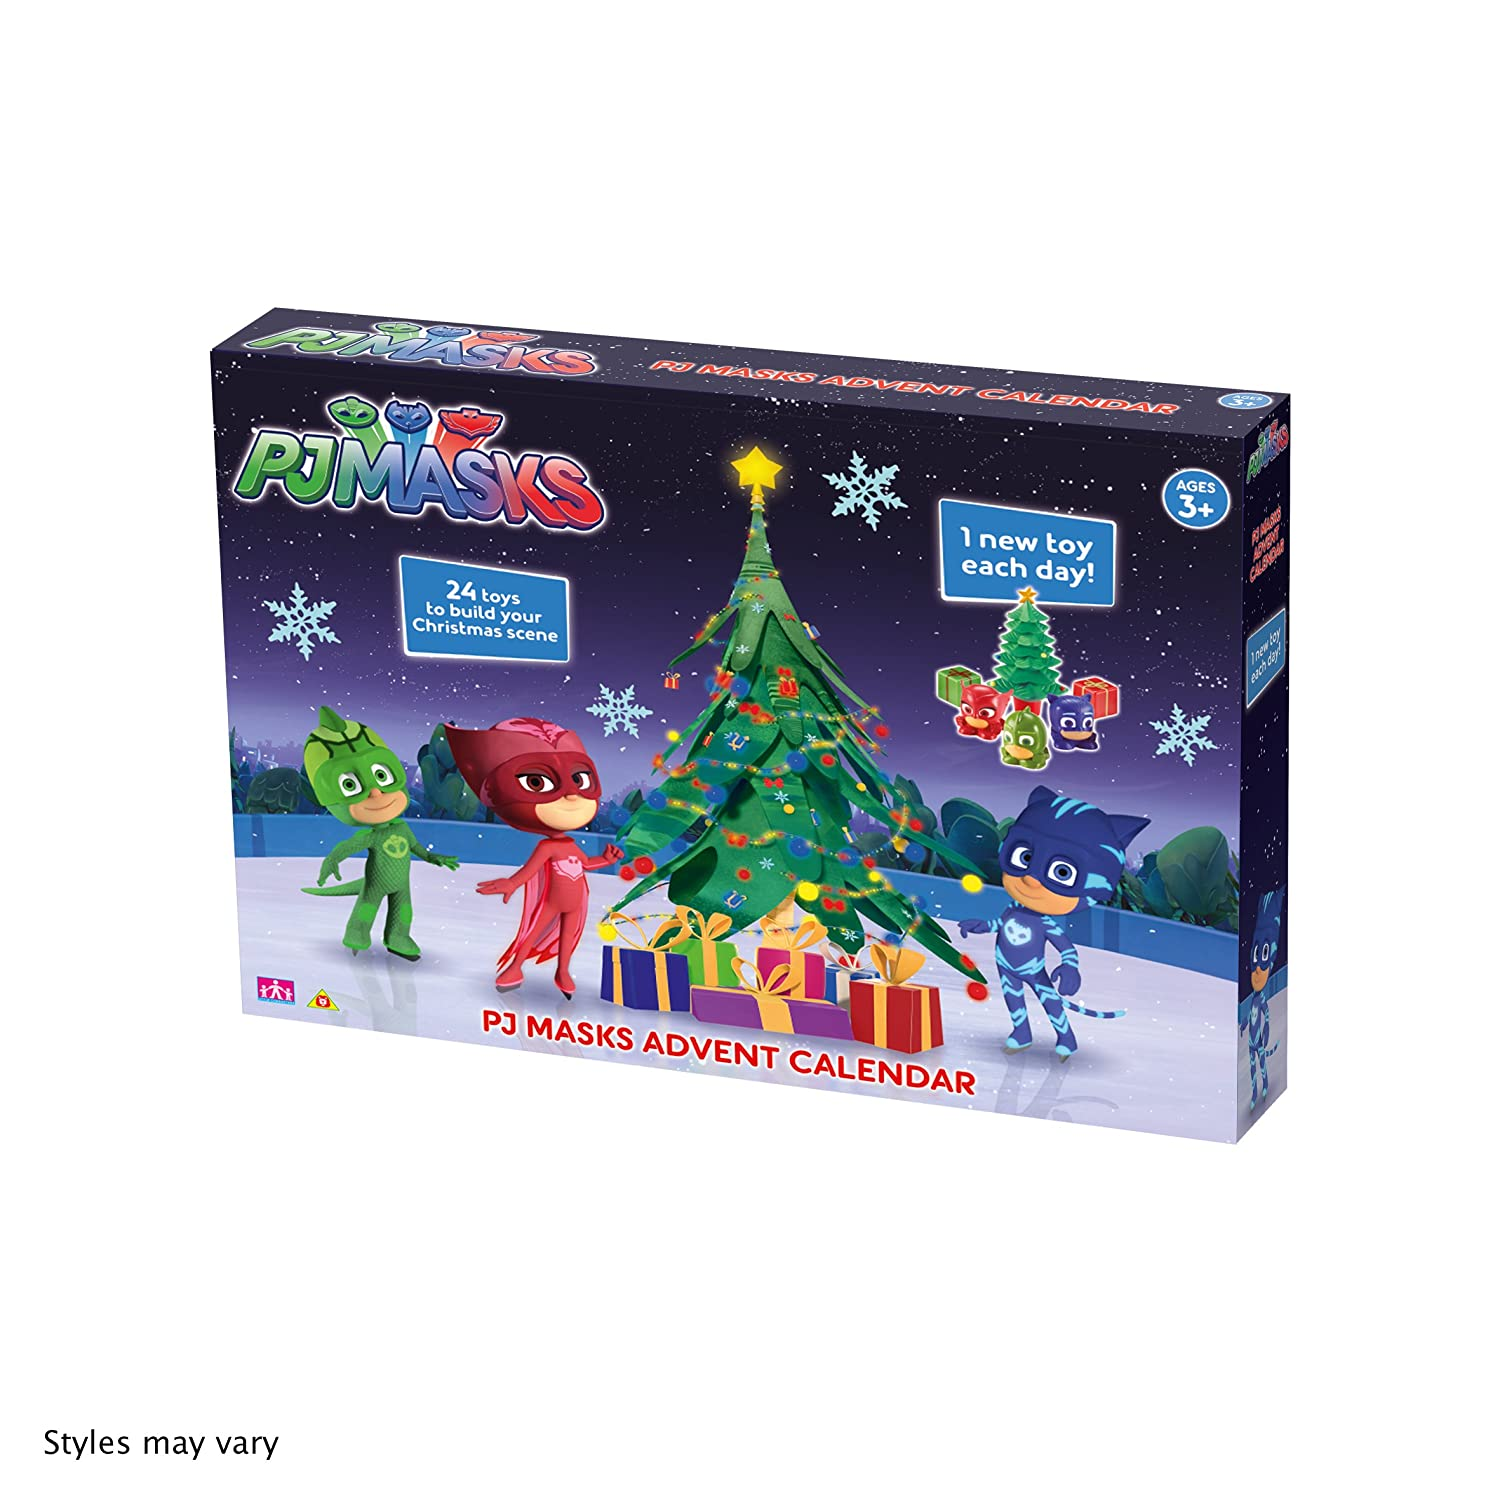 PJ Masks Advent Calendar Character Options 06857